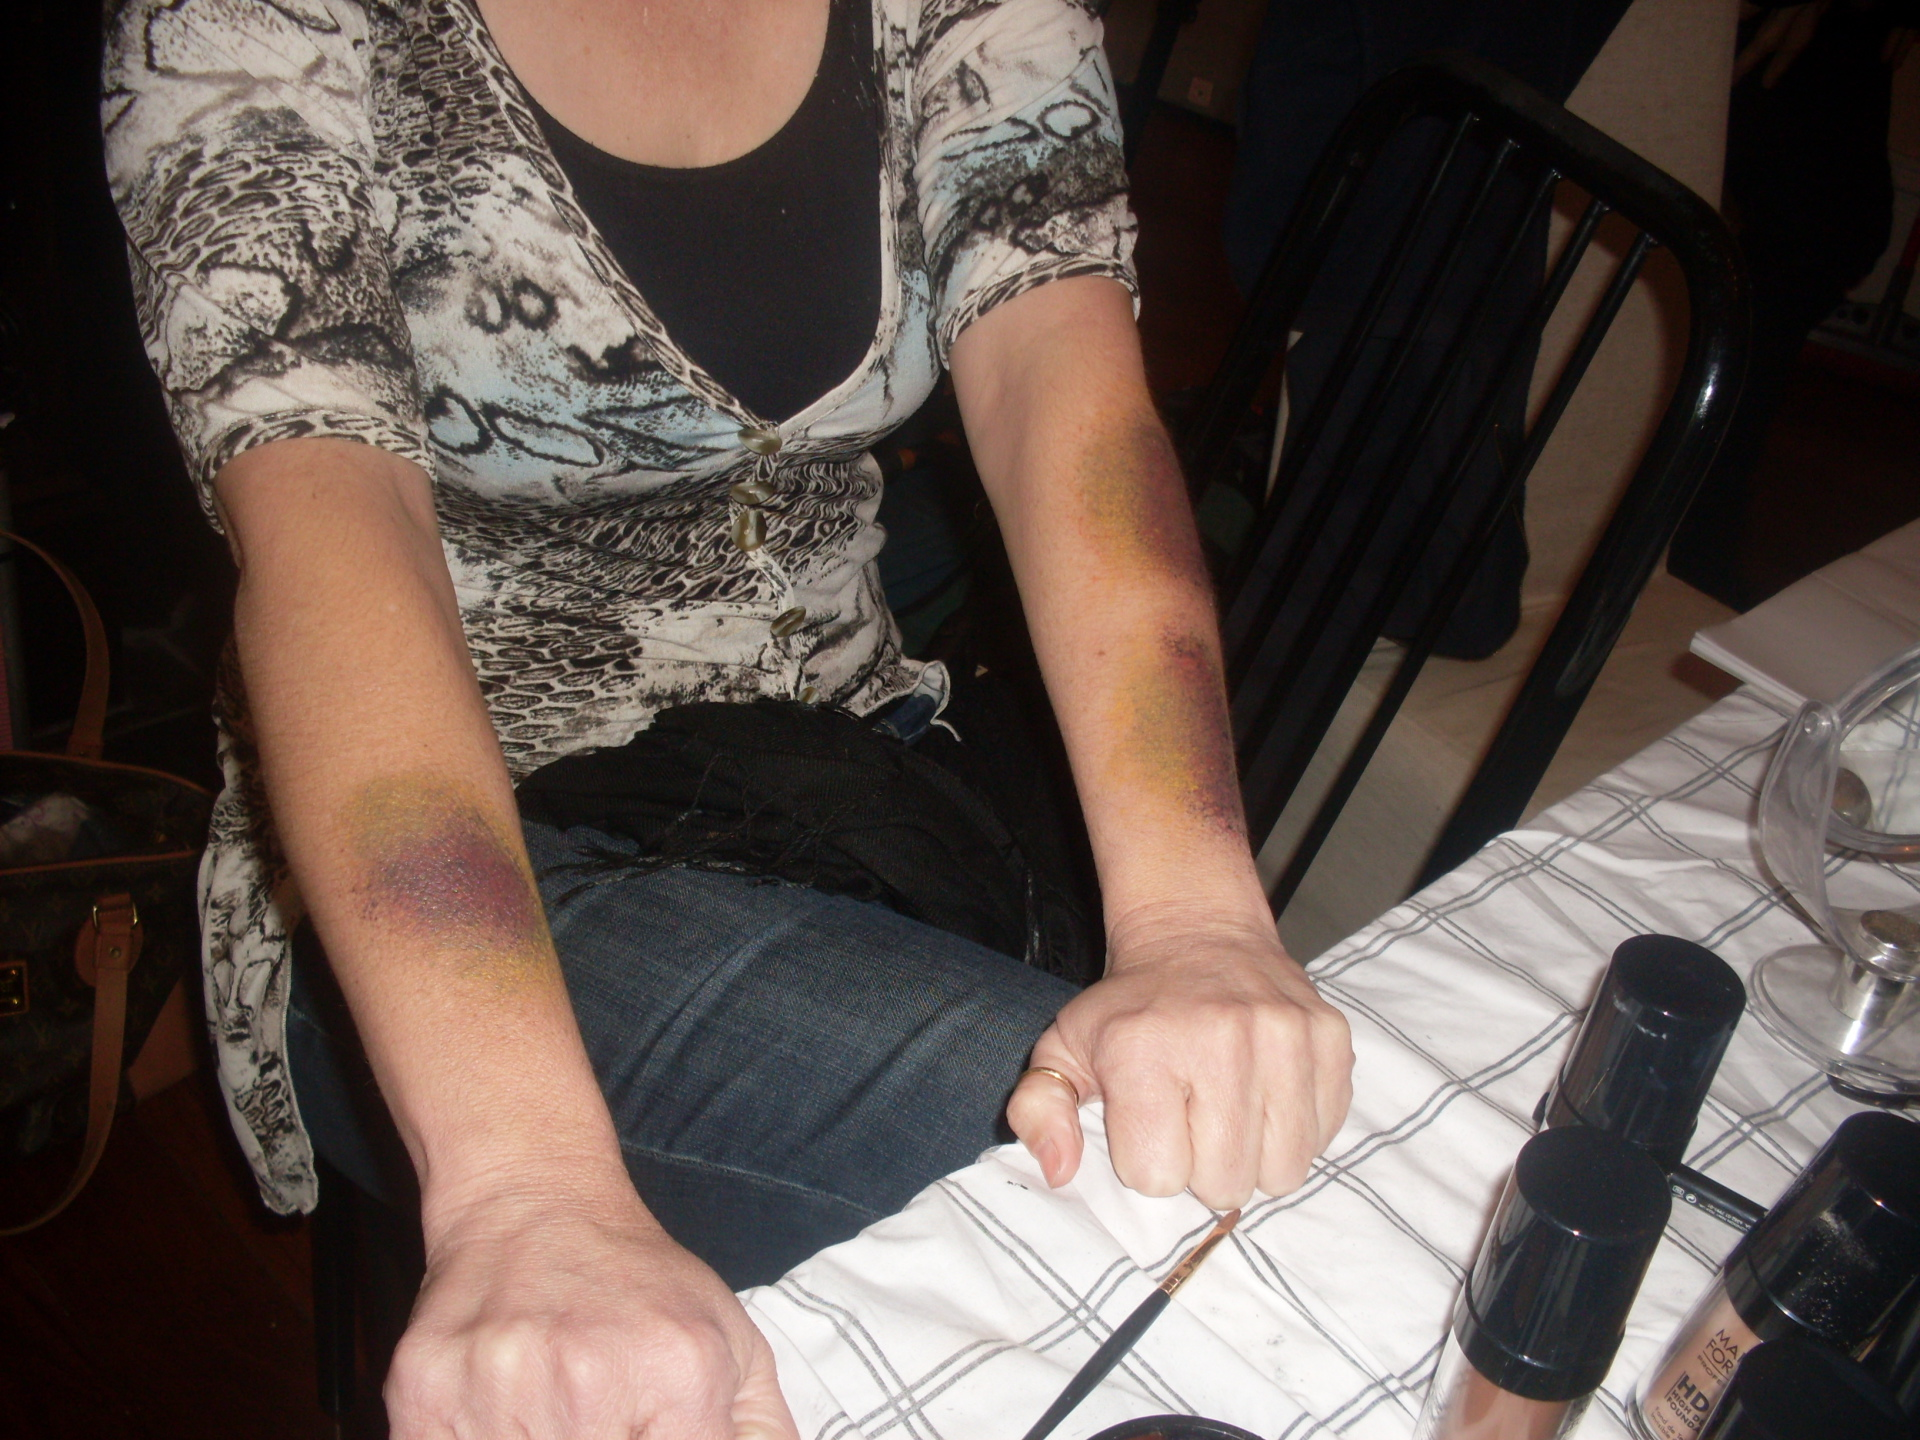 bruises makeup movies special effects SFX Ann-Marina Perth